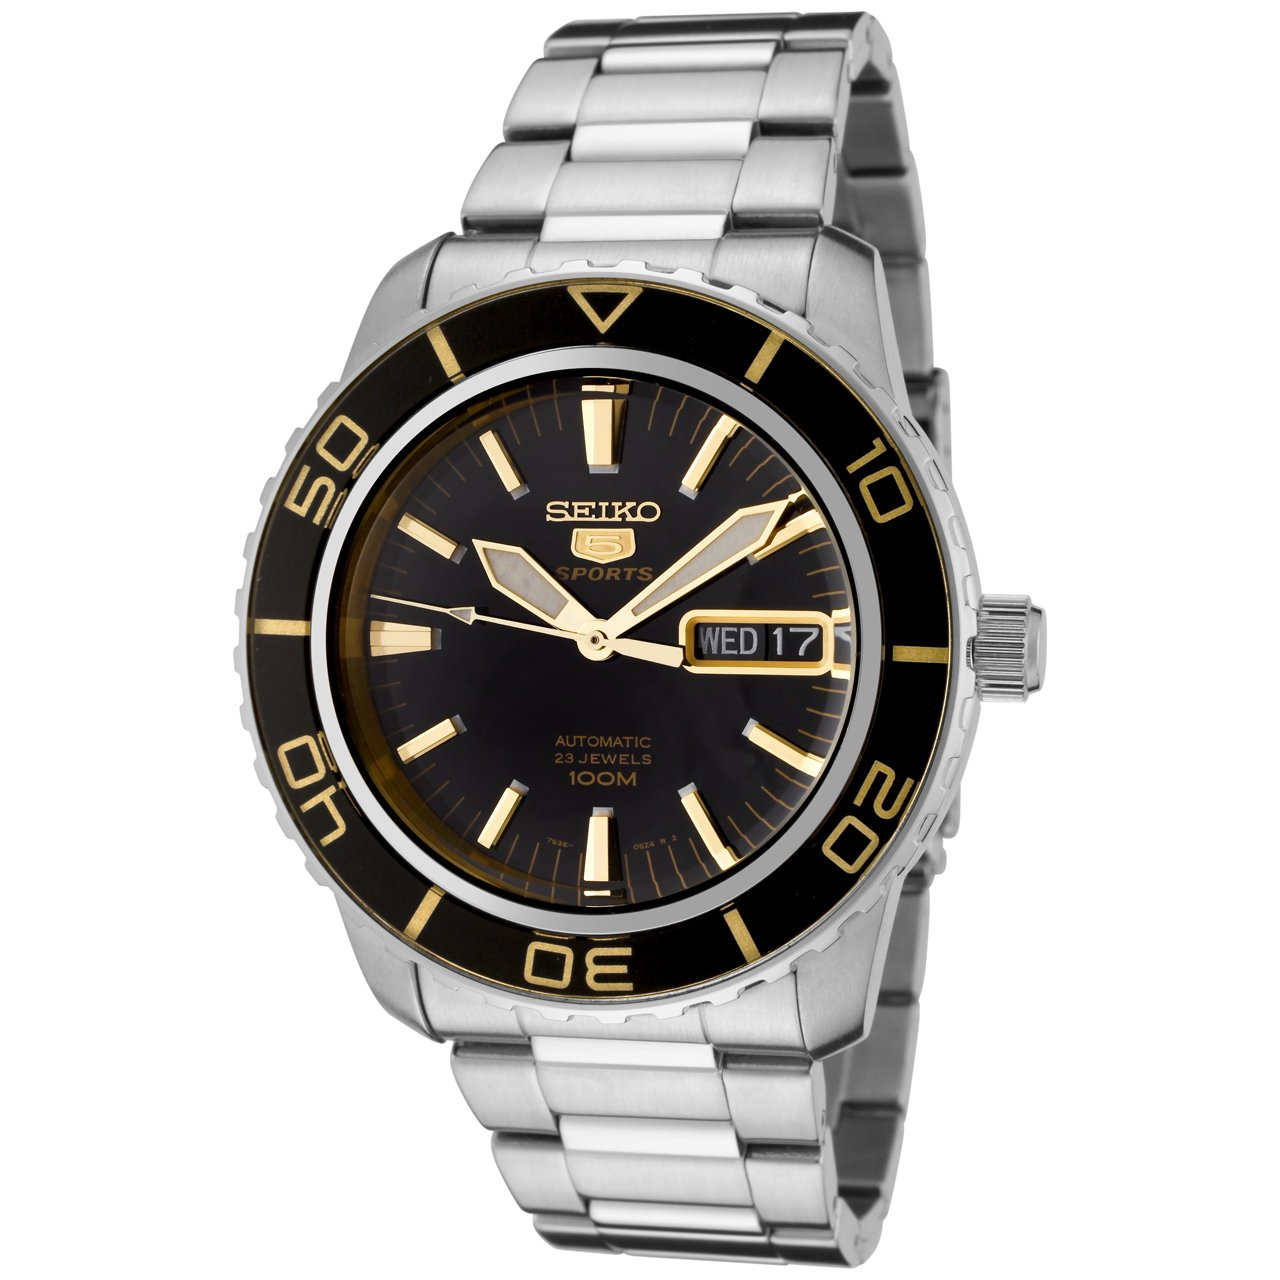 Seiko 5 Snzh57 Good First Watch Purchase?  Watches. Mineral Crystal Watches. March Birthstone Earrings. Double Wedding Rings. Cc Chanel Brooch. Large Bracelet. Nature Necklace. Titanium Rings. Eternity Band Emerald